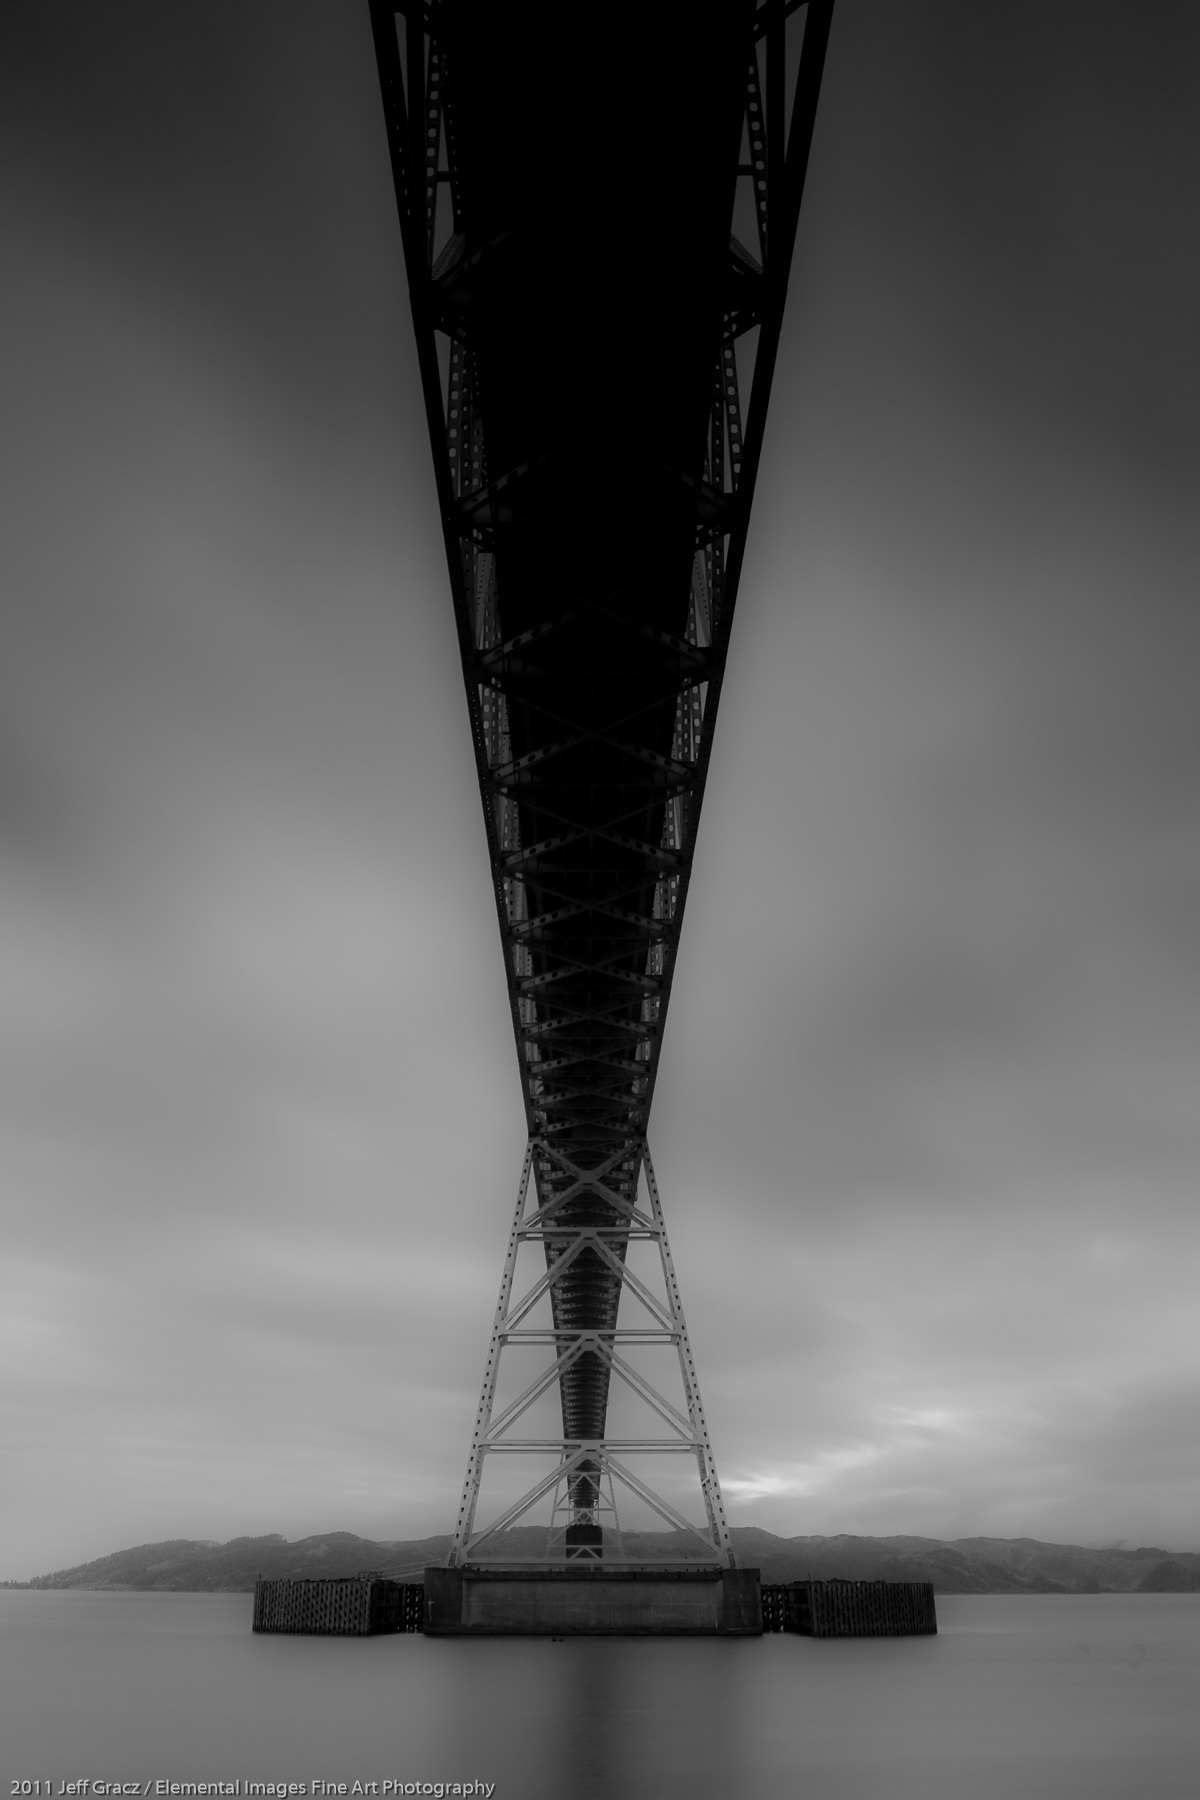 Astoria Bridge II | Astoria | OR | USA - © 2011 Jeff Gracz / Elemental Images Fine Art Photography - All Rights Reserved Worldwide